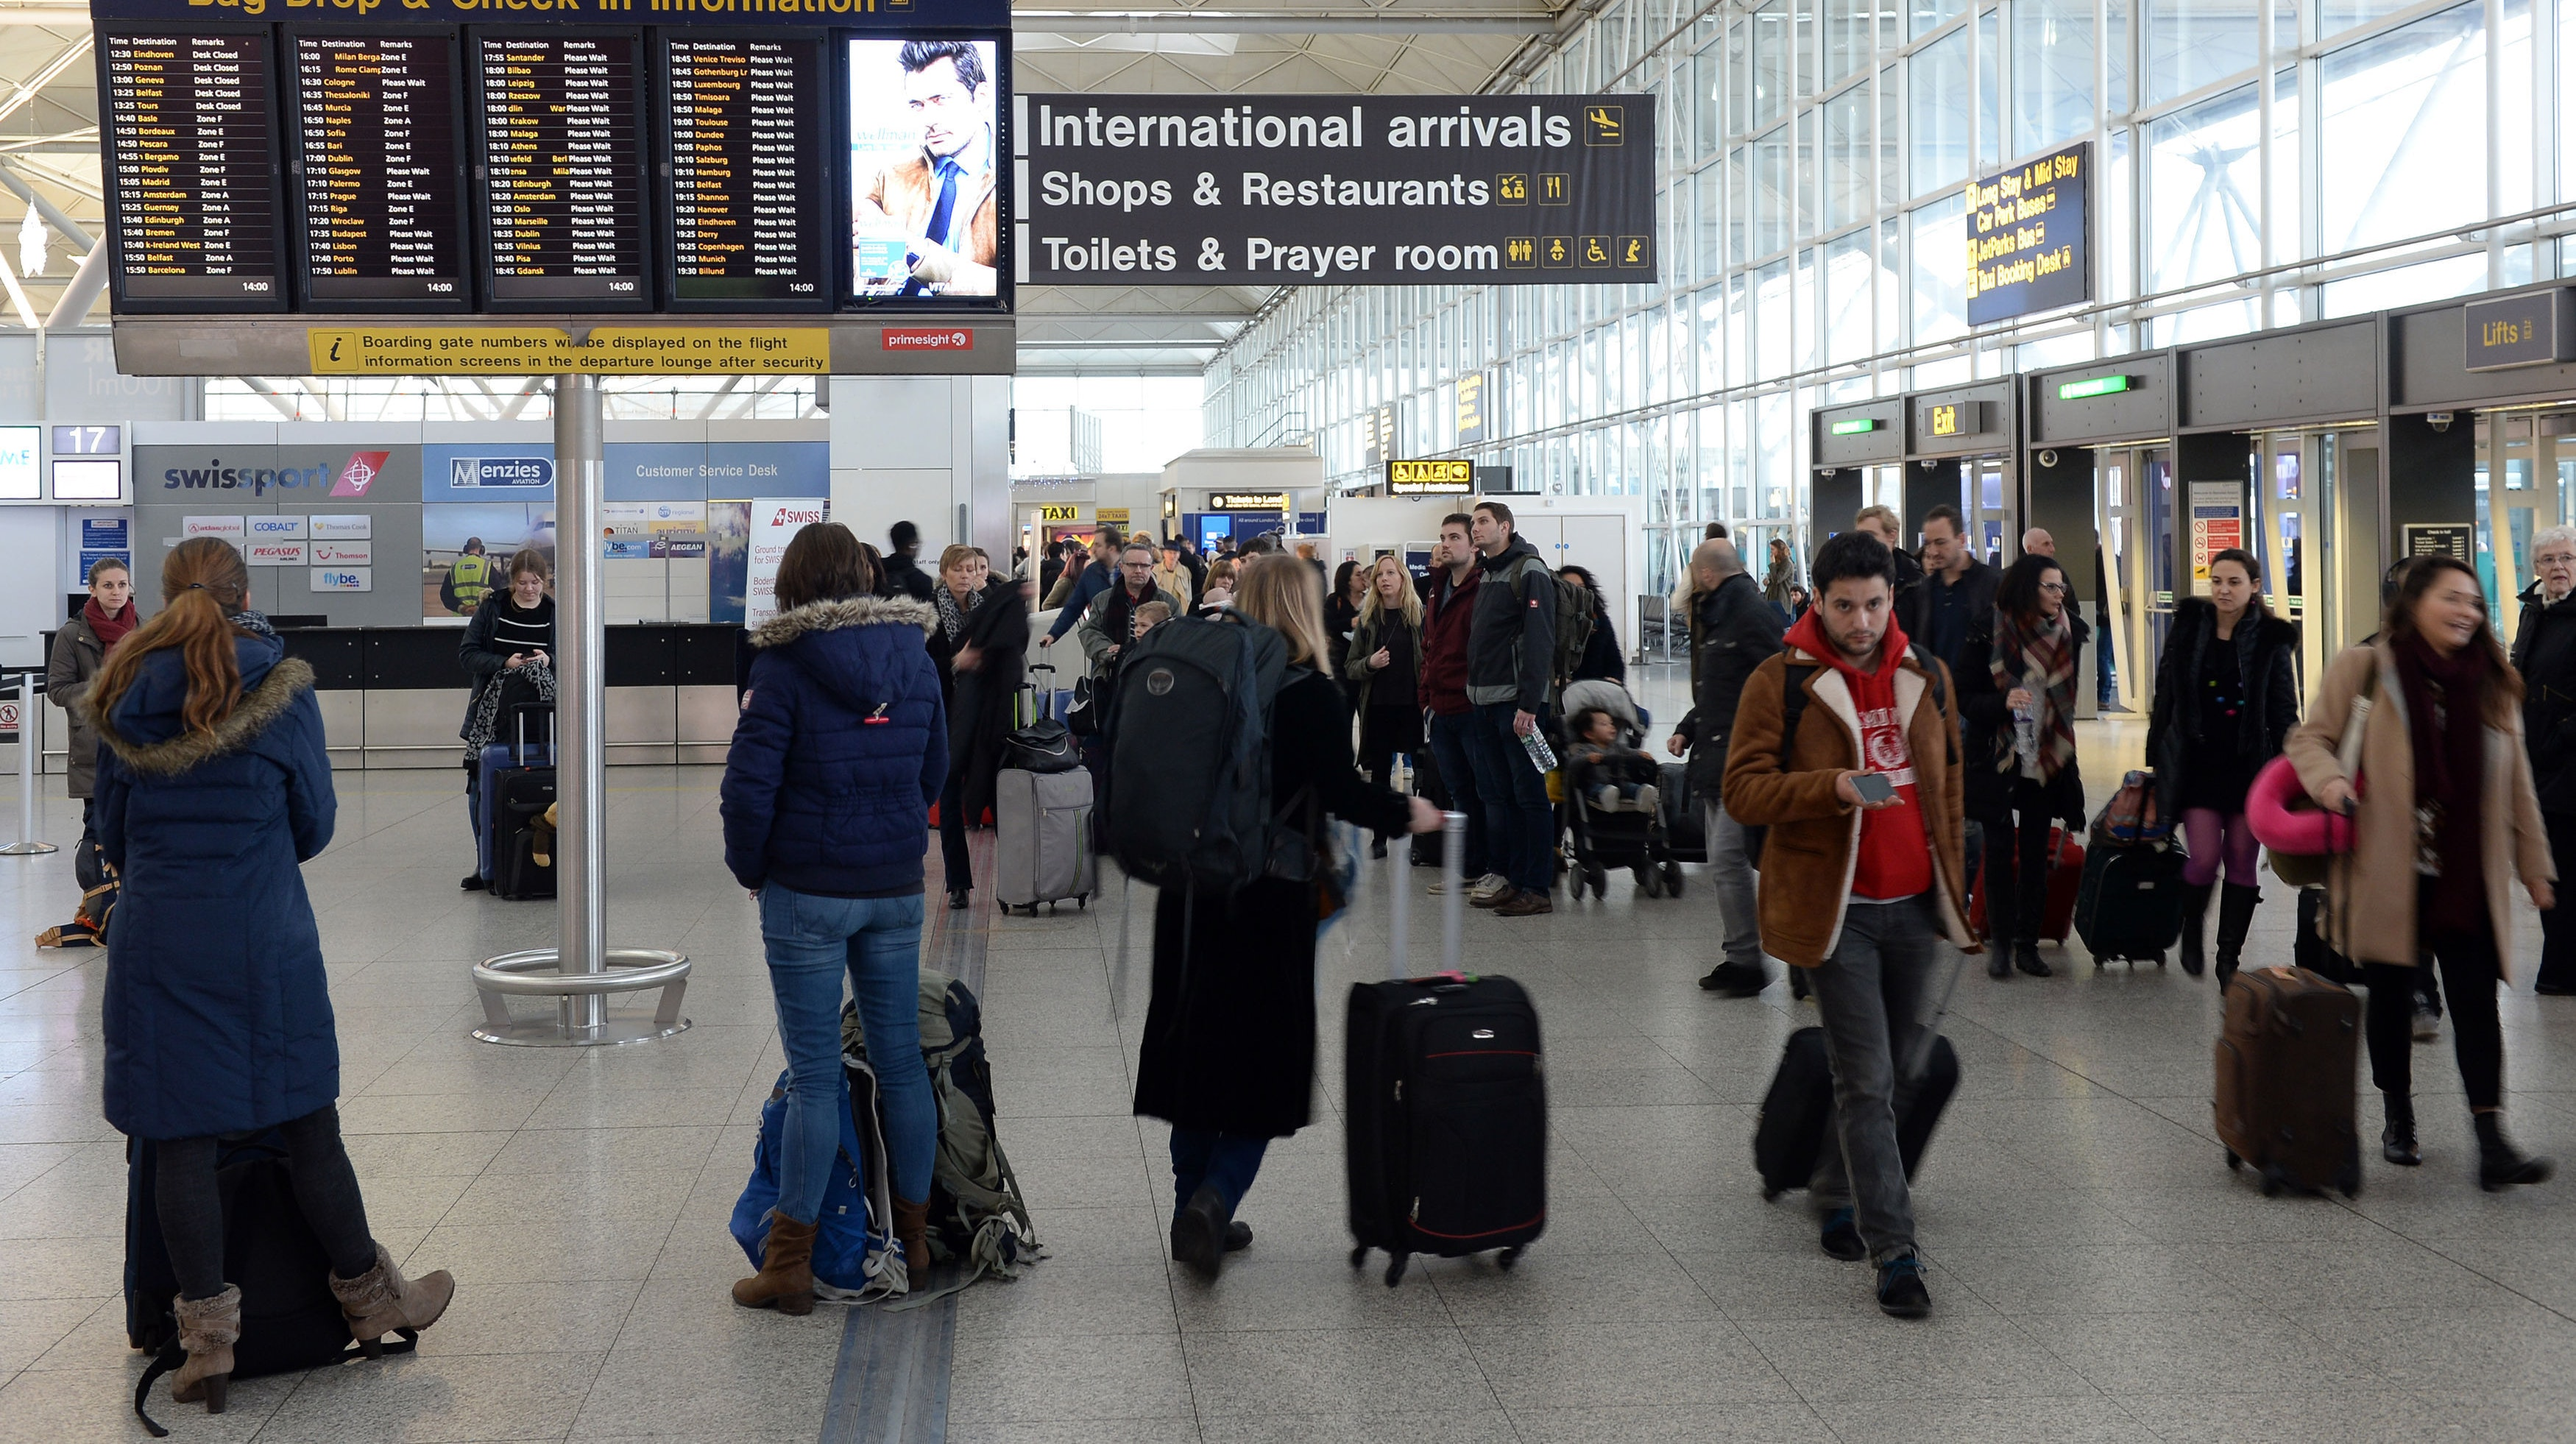 London Airports Want to Make Room for More Passengers